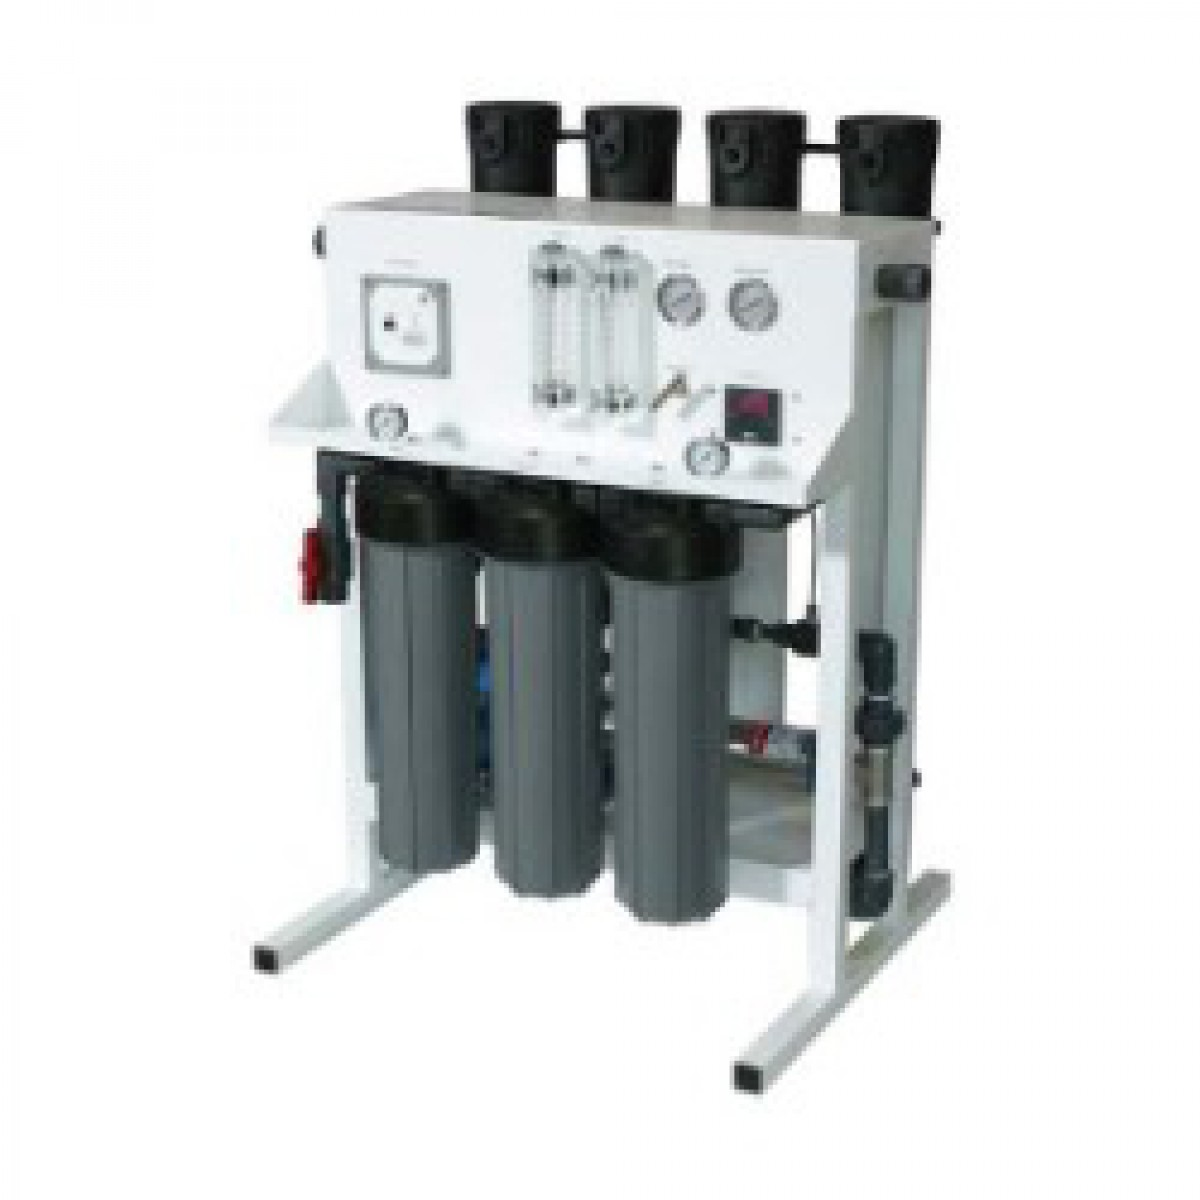 ro ultratec titan 7000 commercial reverse osmosis system. Black Bedroom Furniture Sets. Home Design Ideas